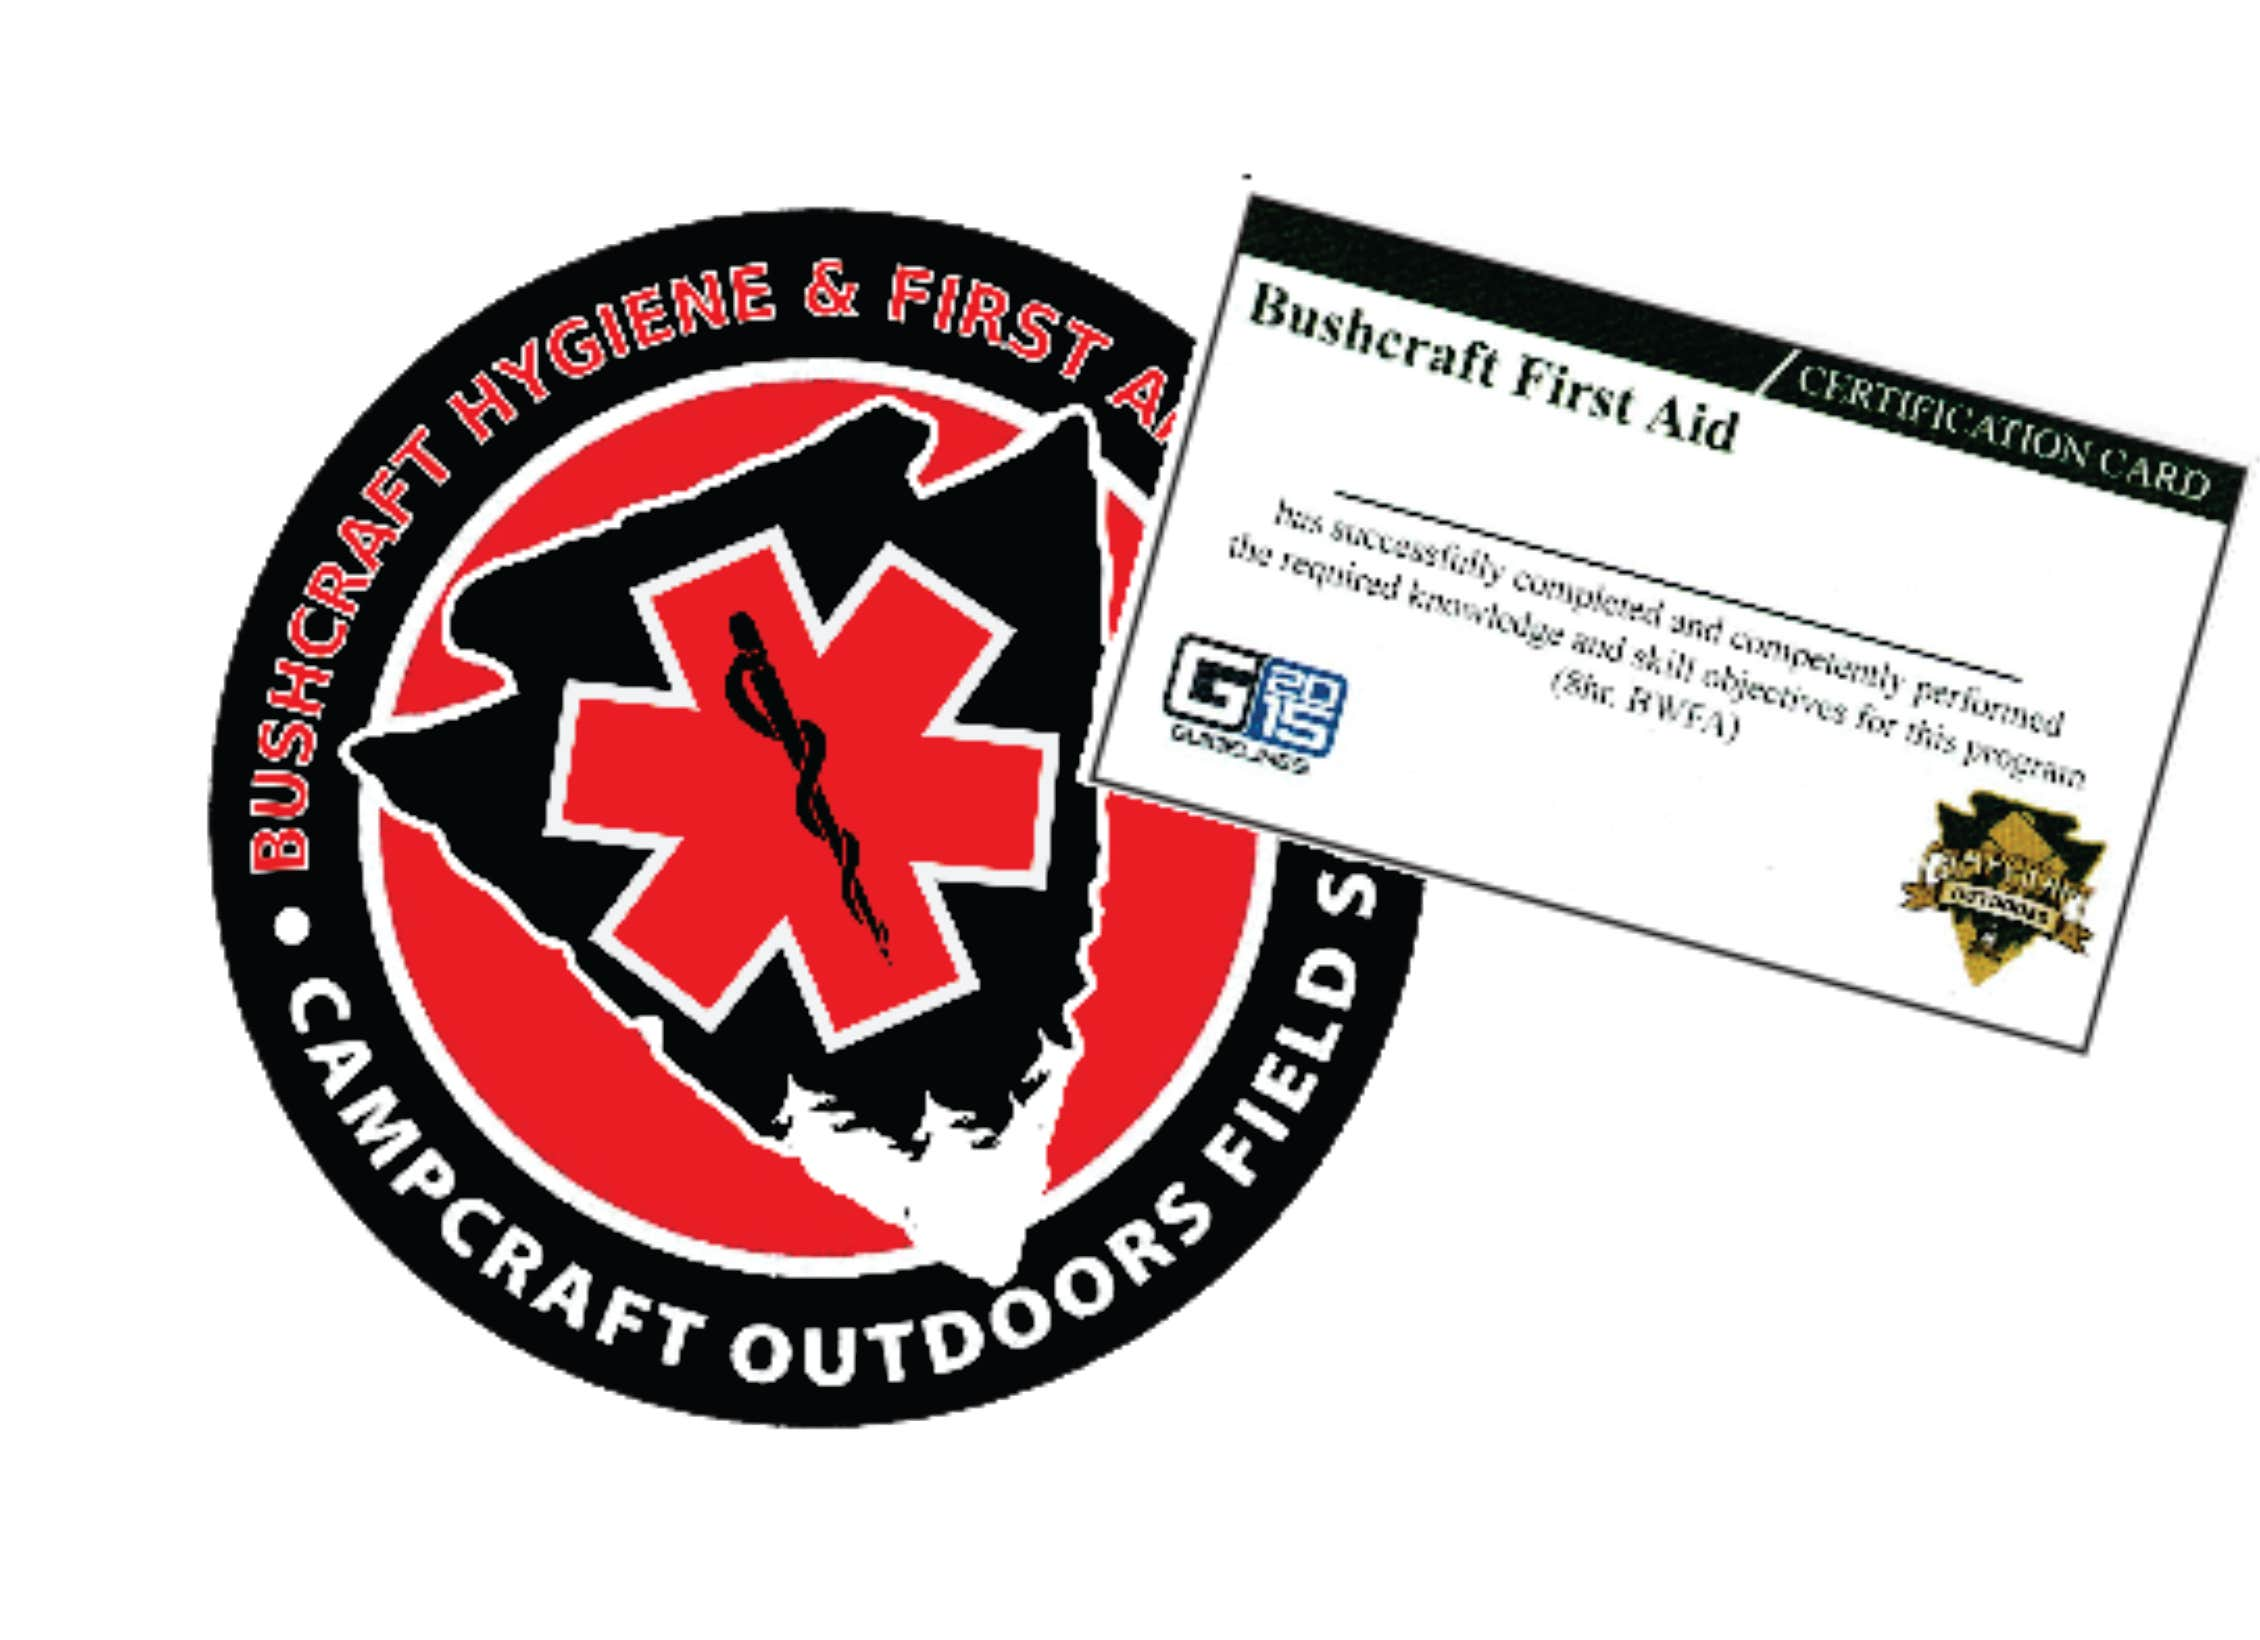 Certification Card, Patch, & Decal